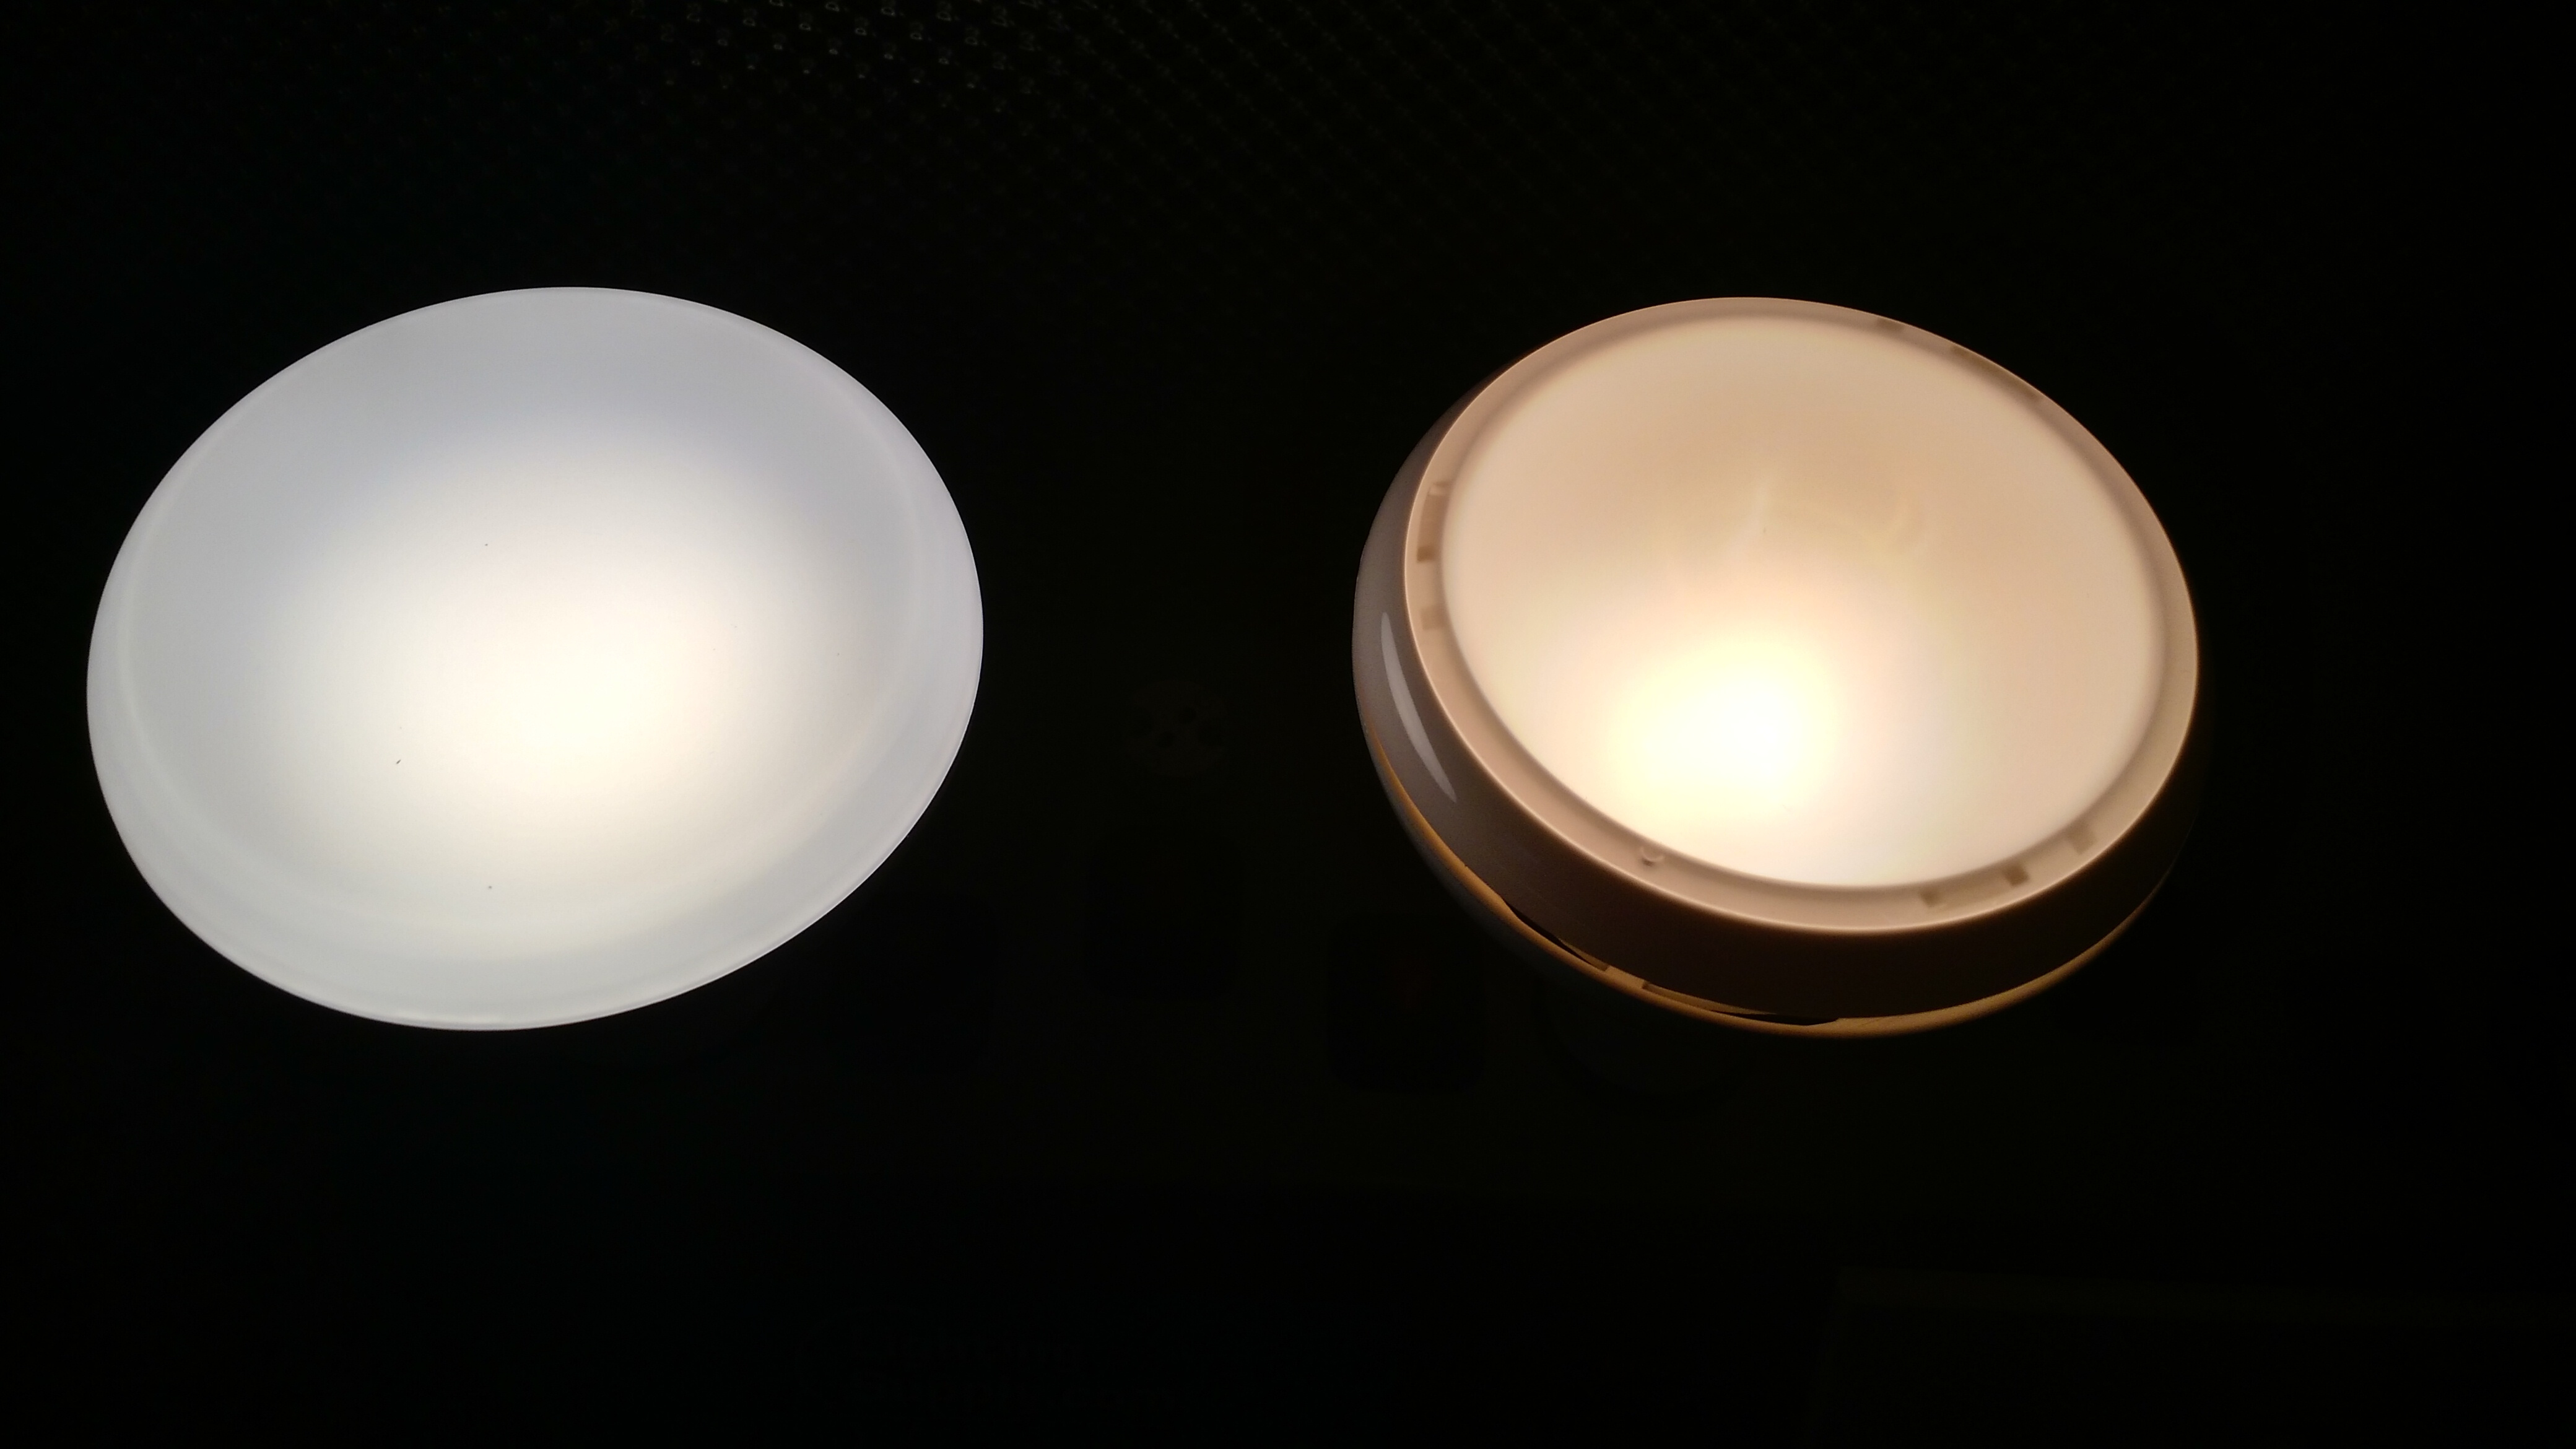 Choosing light bulbs for recessed lighting : Things you should know before choosing recessed lighting